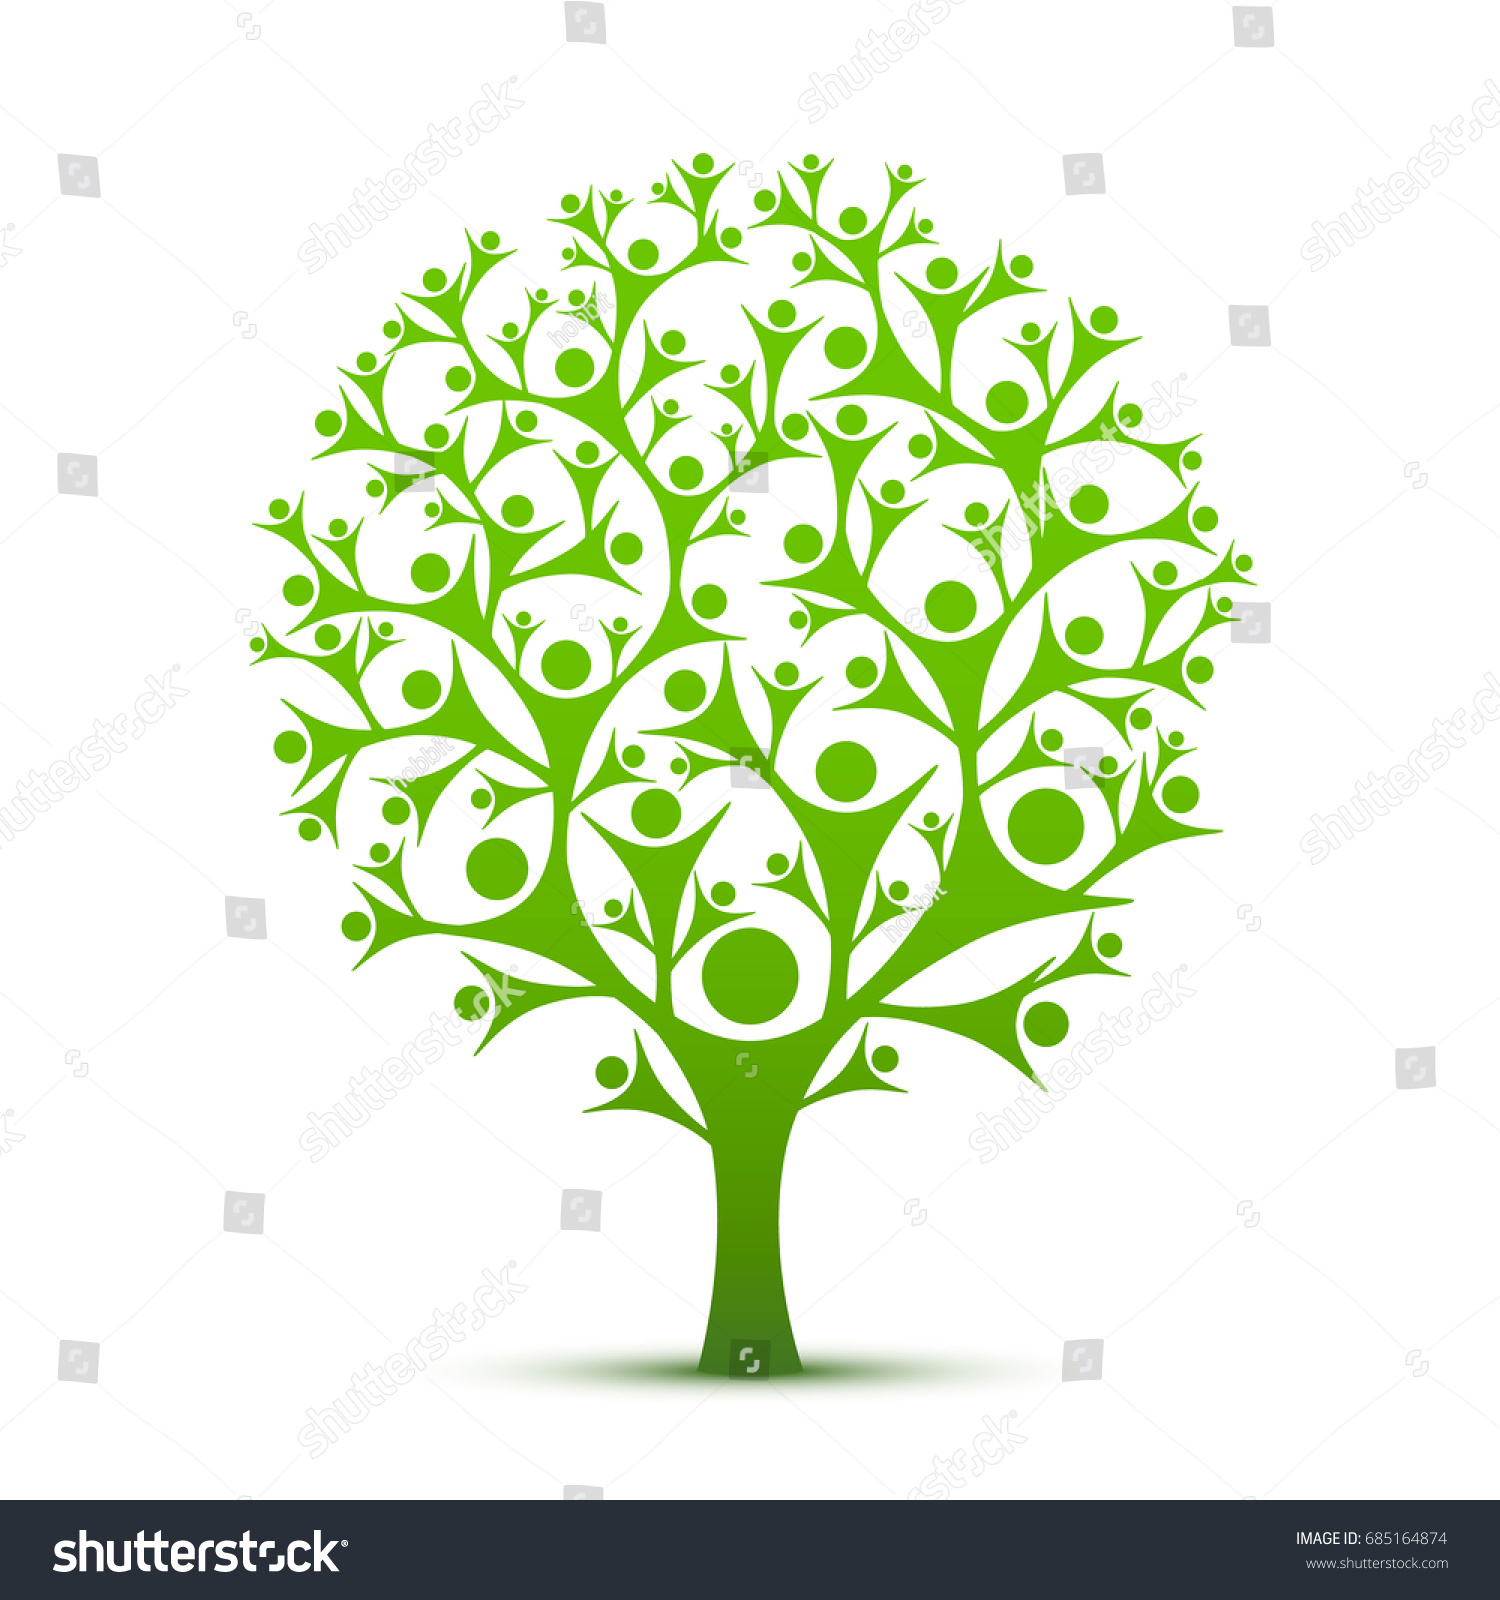 People Tree Sign Color Green On Stock Vector 685164874 - Shutterstock